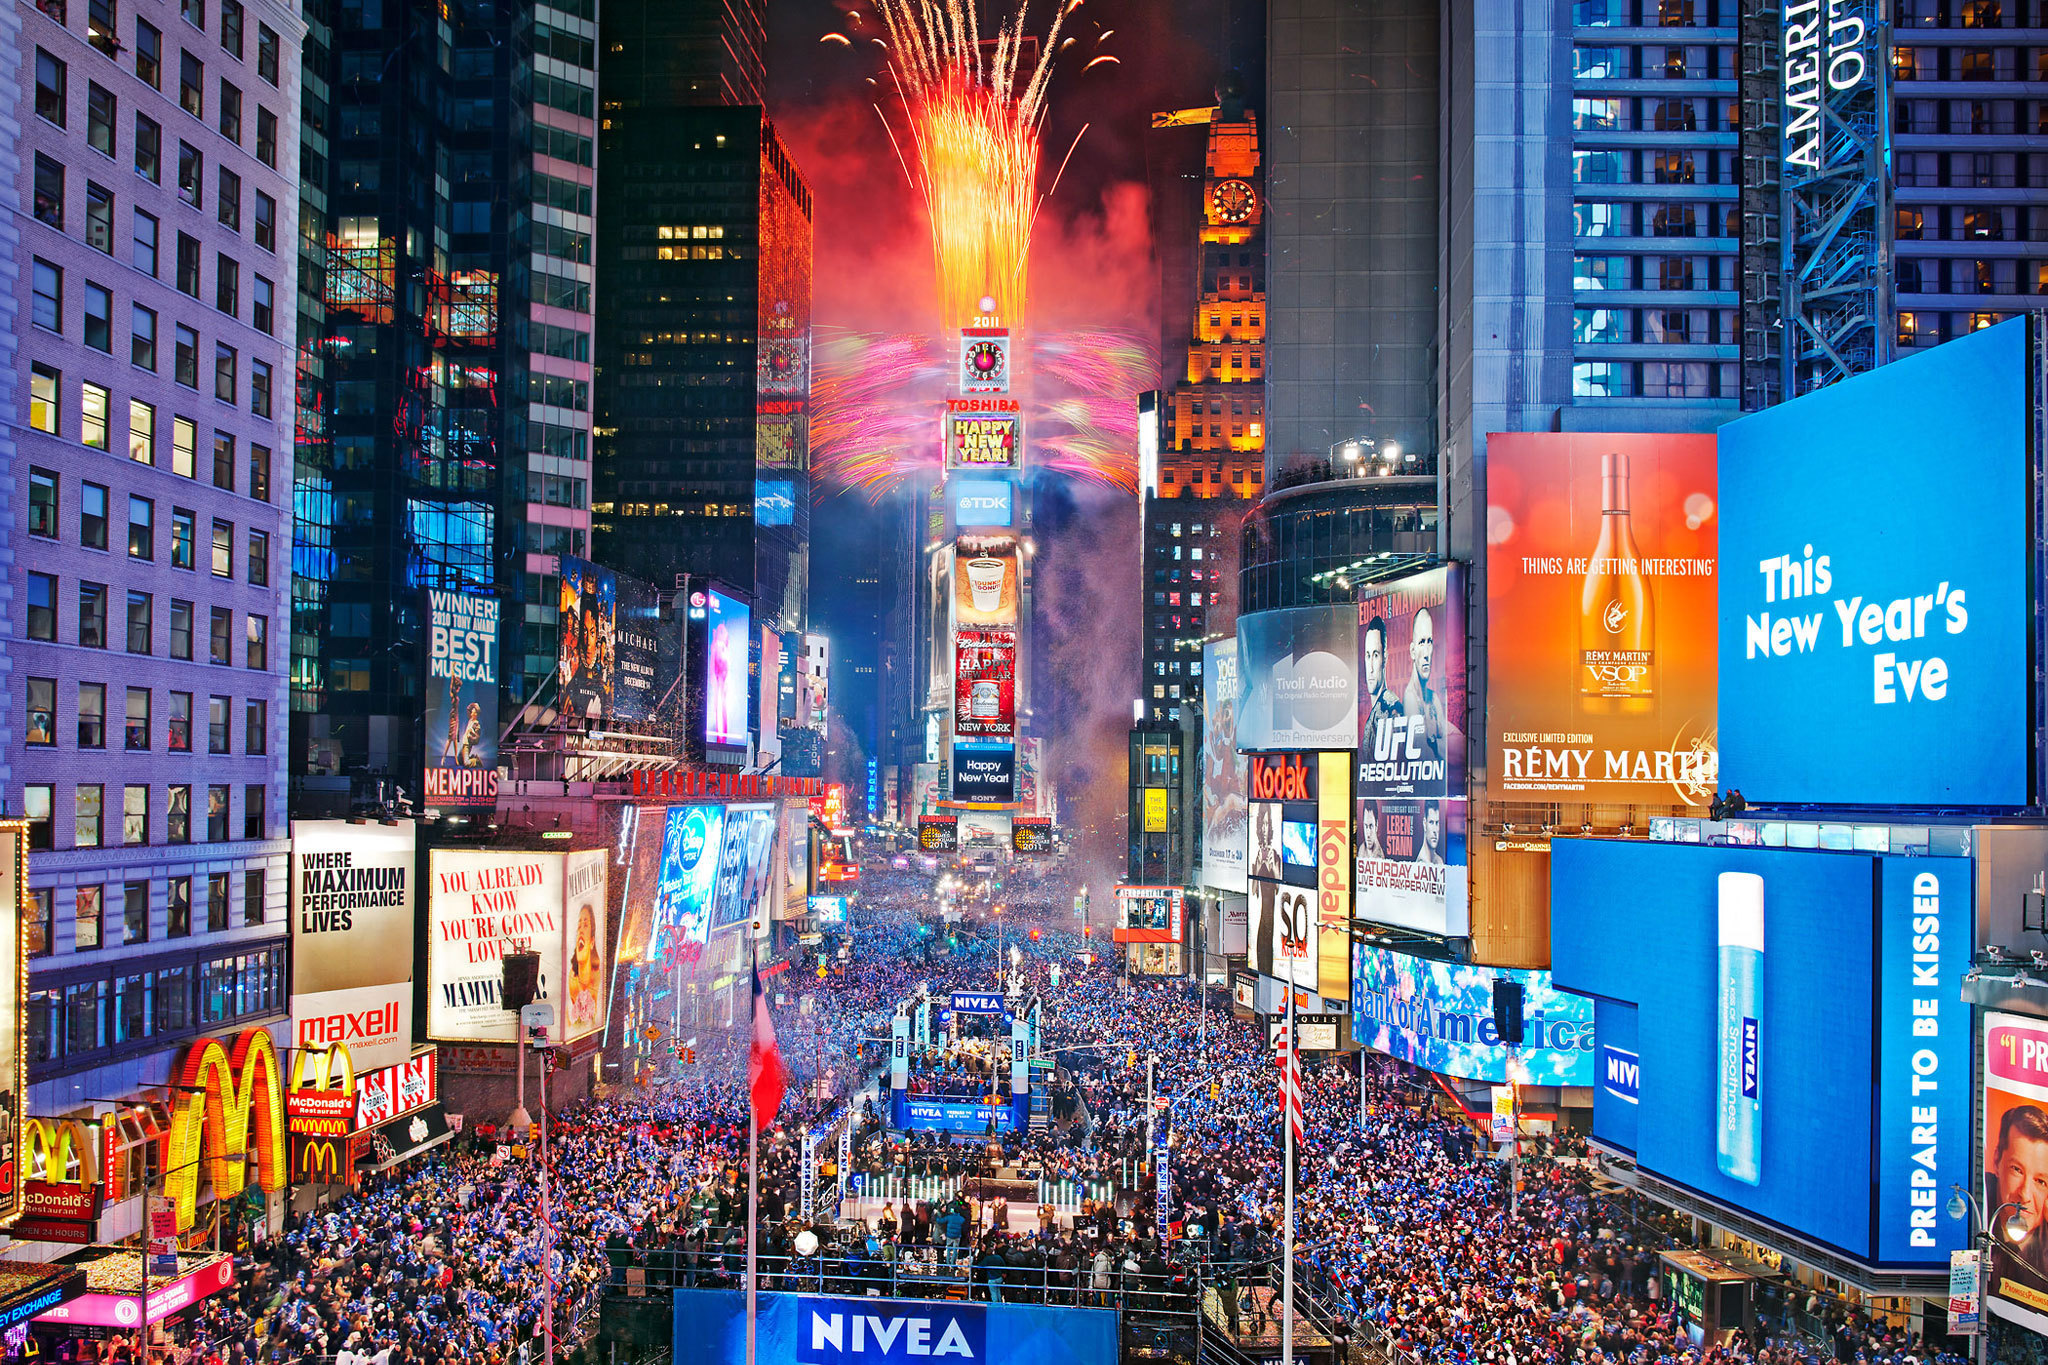 Here's the performance lineup for the Times Square New Year's Eve celebration